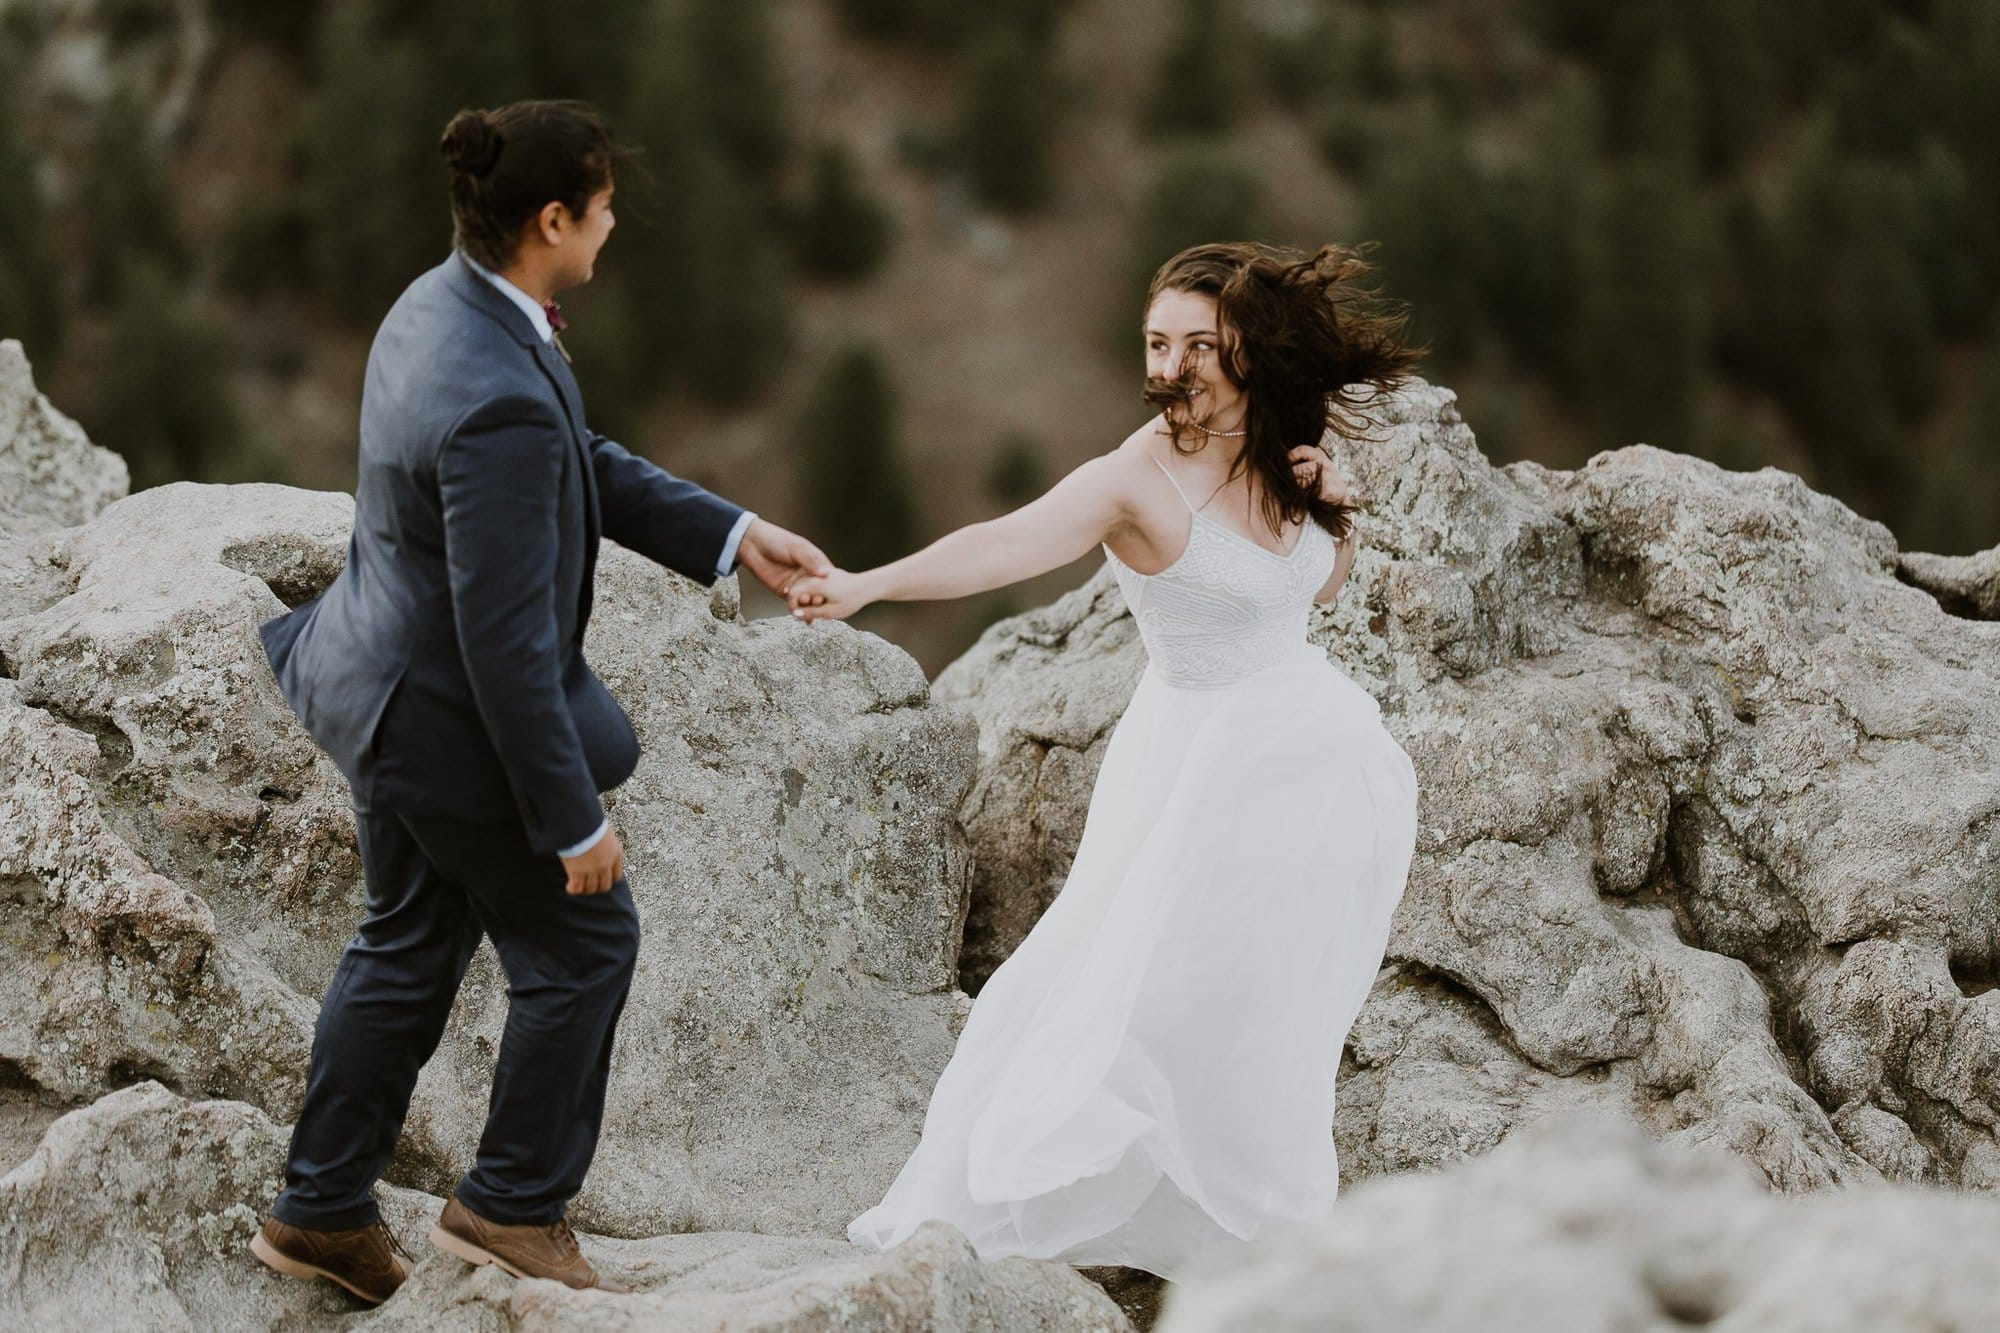 FLAGSTAFF MOUNTAIN COLORADO ELOPEMENT | BRITTNI + BRUNO|BOULDER COLORADO WINTER ELOPEMENT| LOST GULCH OUTLOOK ELOPEMENT PHOTOGRAPHER| JUSTYNA E BUTLER PHOTOGRAPHY | COLORADO MOUNTAIN ADVENTUROUS ELOPEMENT PHOTOGRAPHER|INTIMATE WEDDING| ADVENTURE WEDDING PHOTOGRAPHER|SELF-SOLEMNIZING COLORADO ELOPEMENT